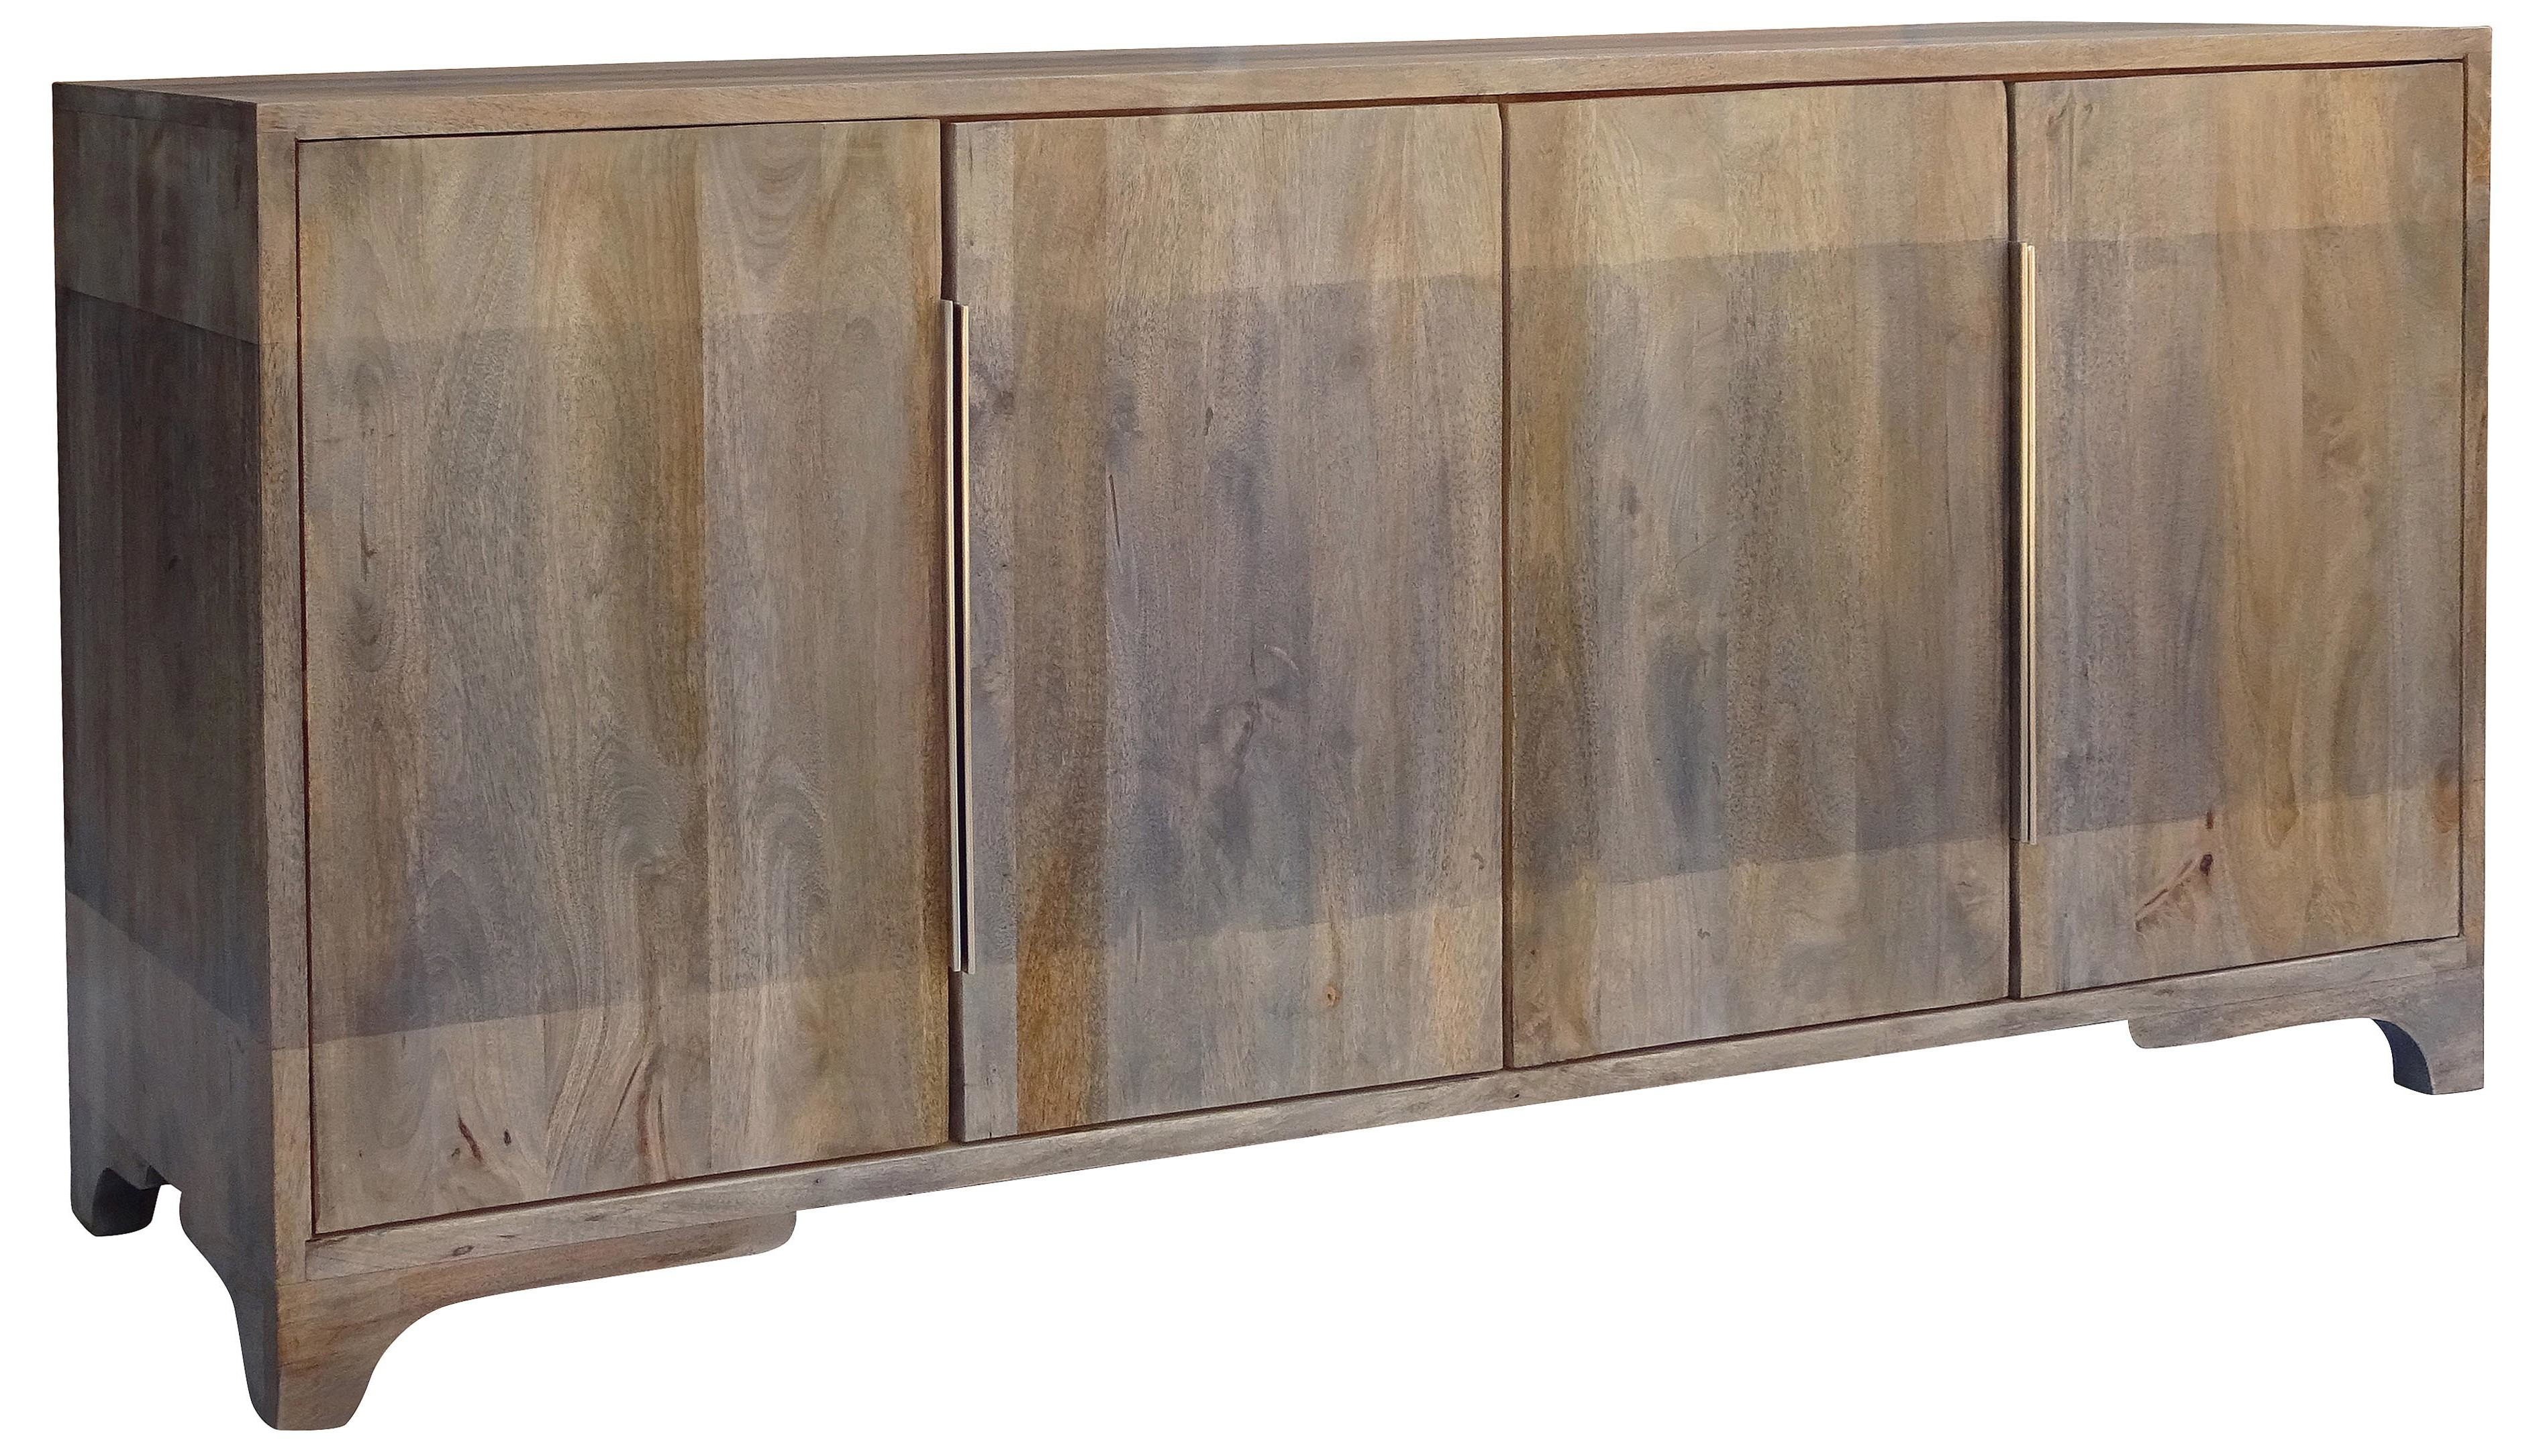 Popular Trent Austin Design Nia Sideboard Throughout Steinhatchee Reclaimed Pine 4 Door Sideboards (View 10 of 20)